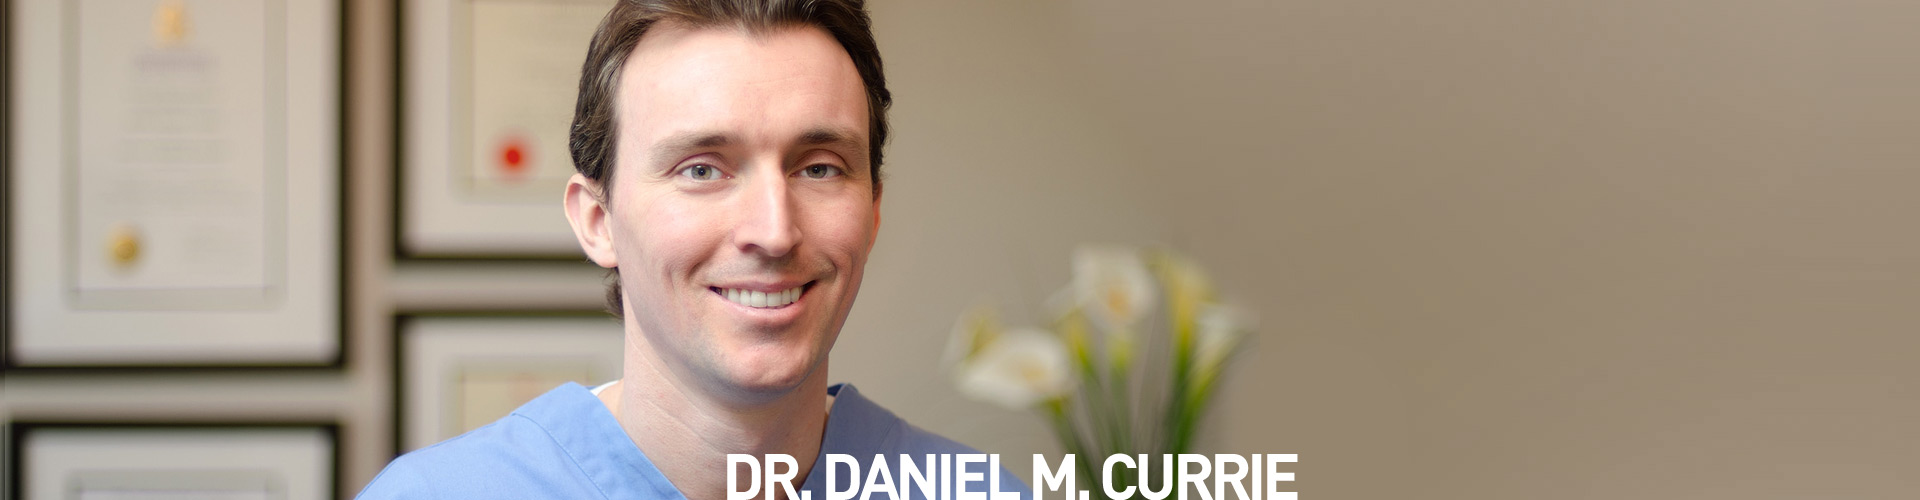 Dr. Daniel. M. Currie - Pearl Dental Burlington